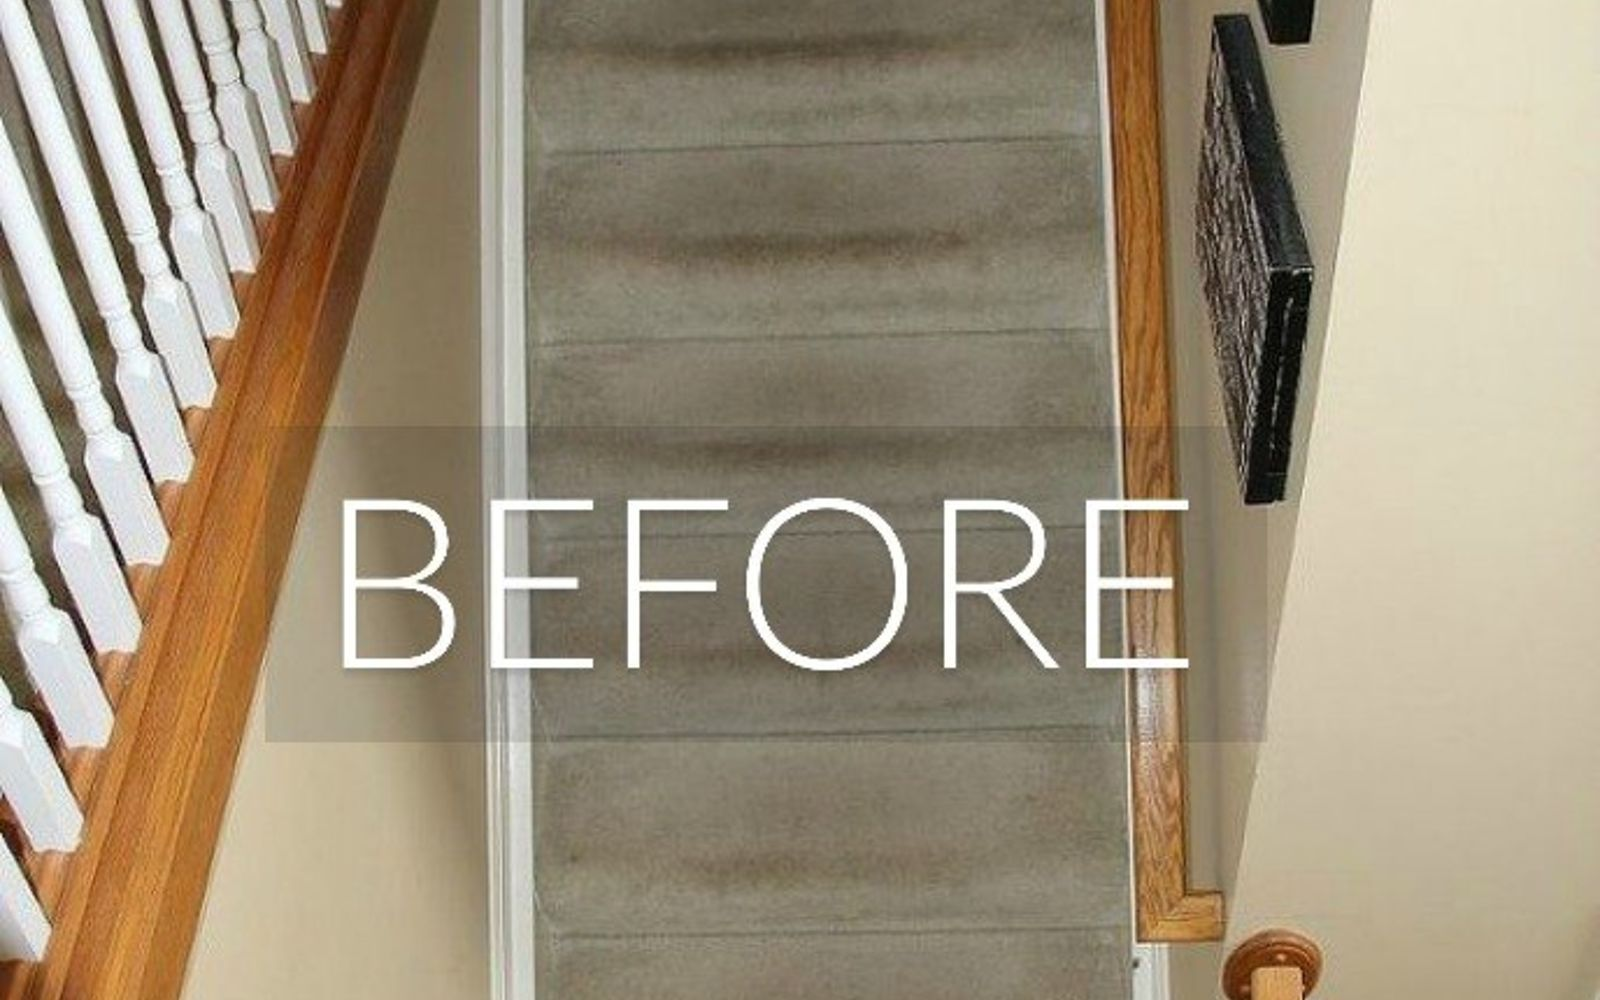 s 7 floor transformations that ll convince you to get rid of your carpet, flooring, reupholster, Before Tracked on stairs